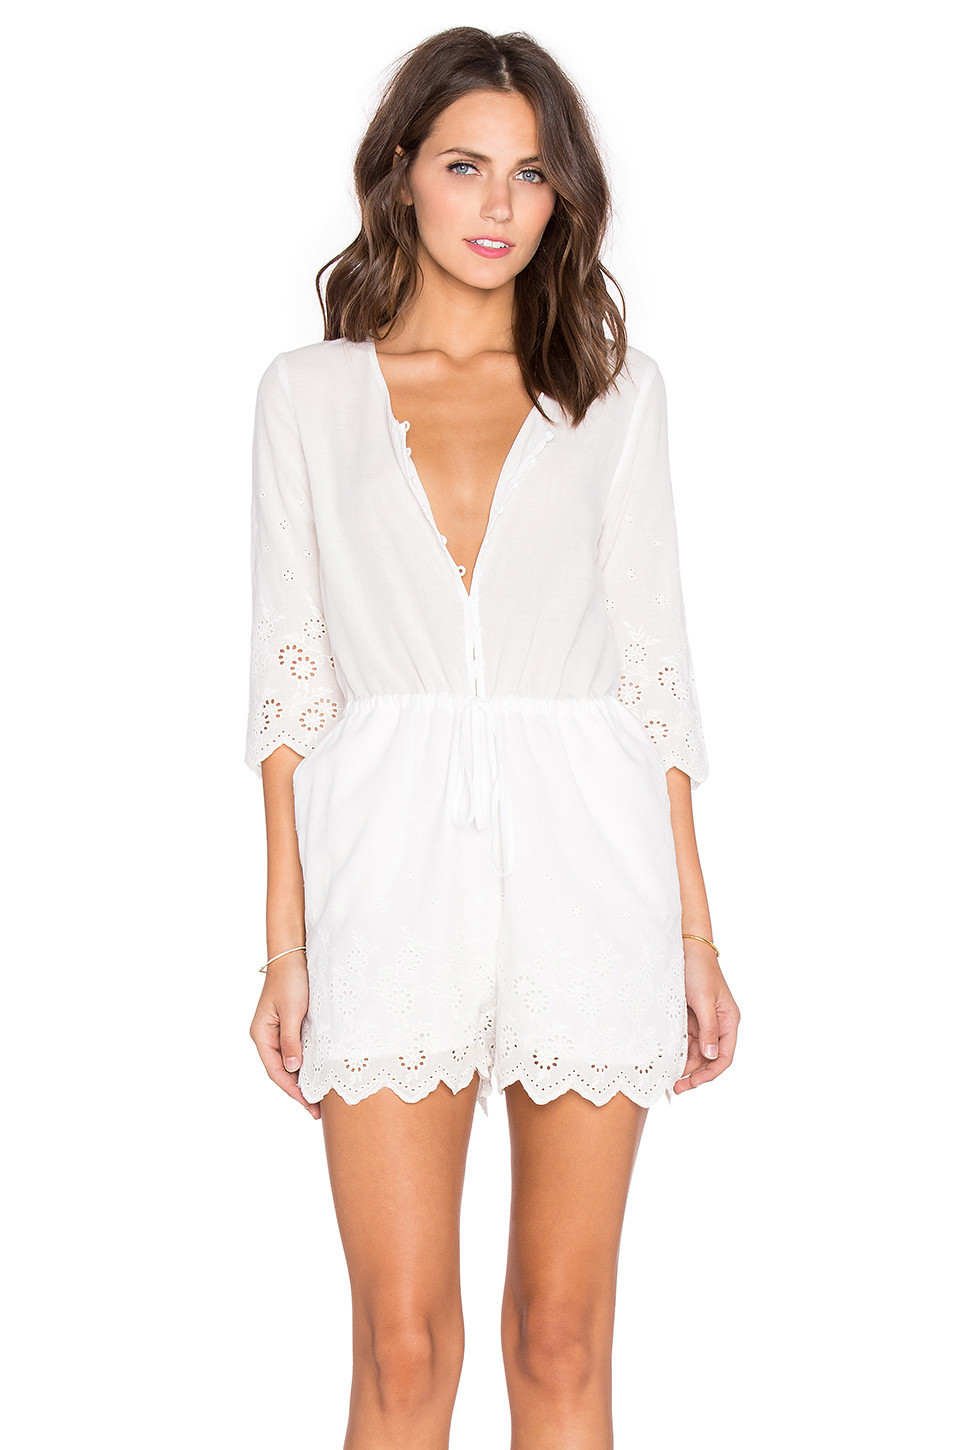 e77bfe978e Toby Heart Ginger Daisy Picking Embroidered Romper in white